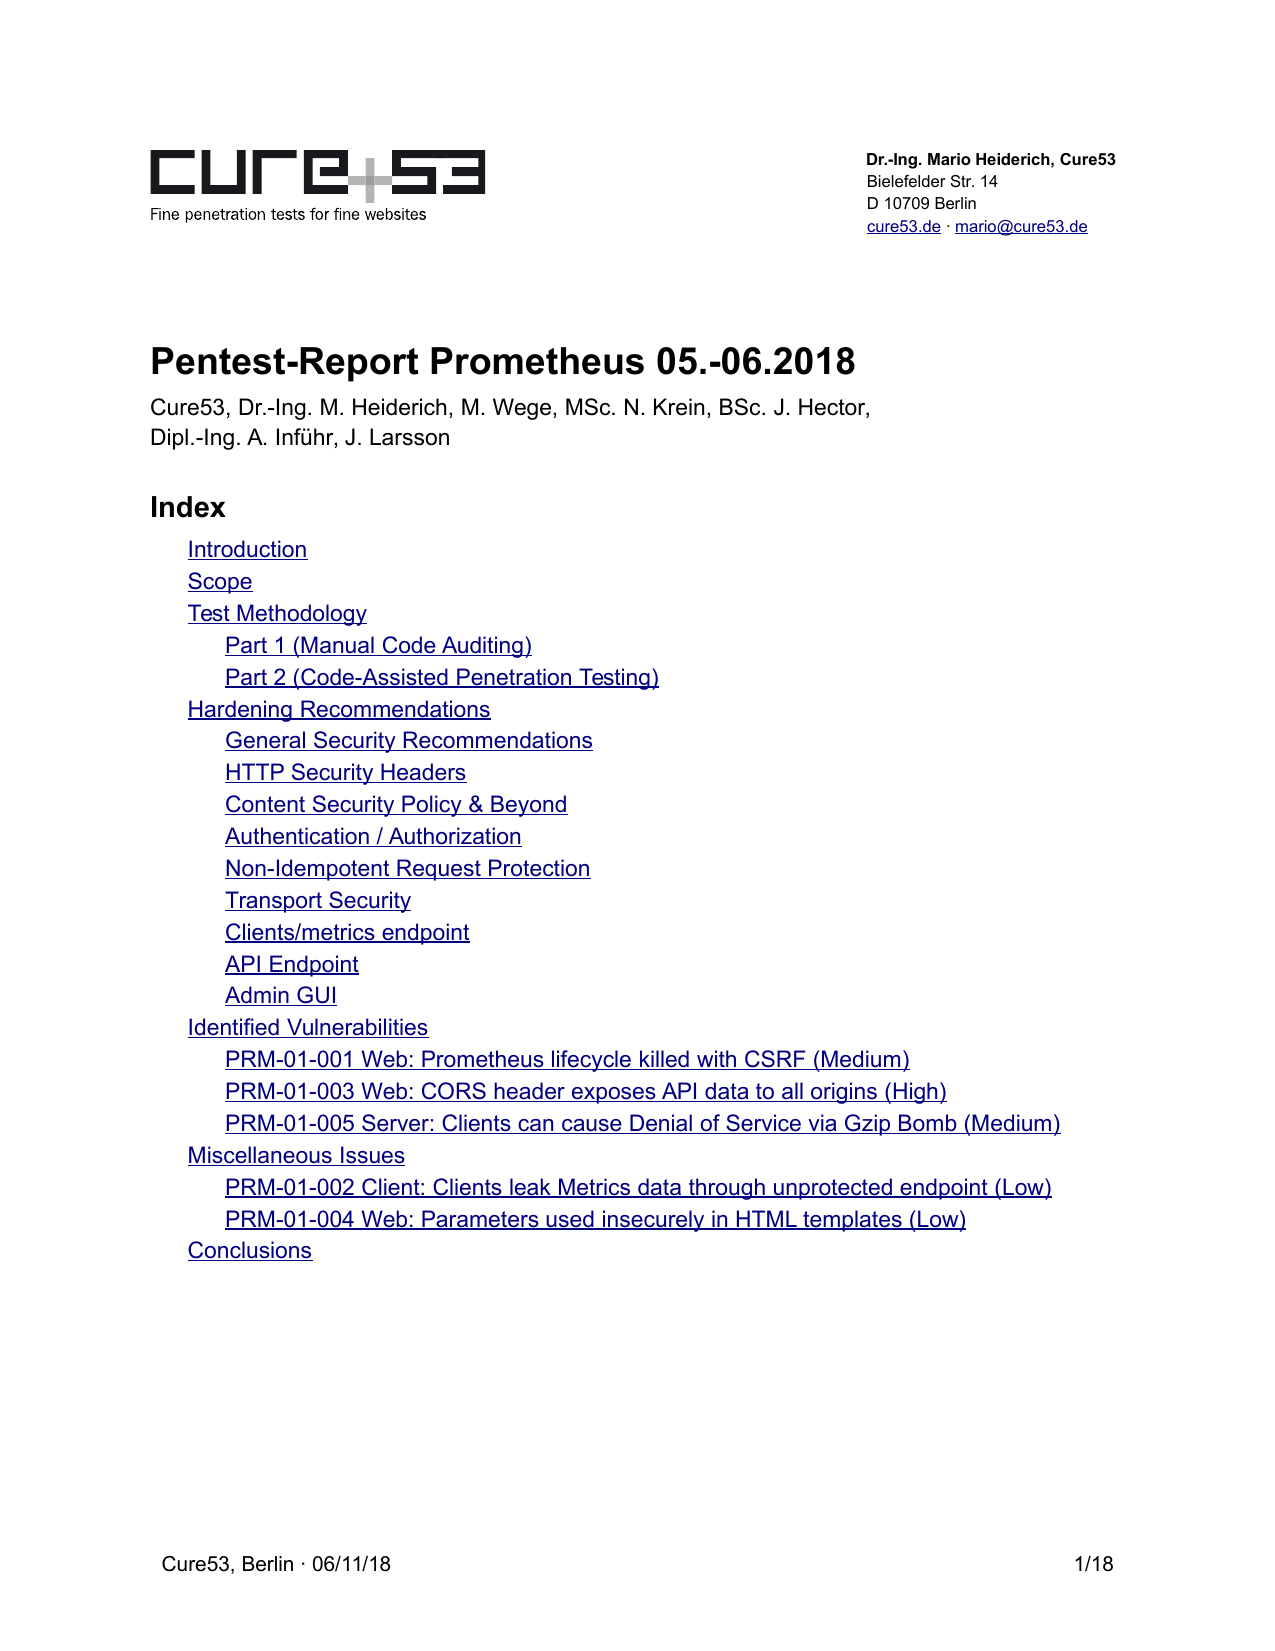 First page of the 'pentest-report prometheus' PDF